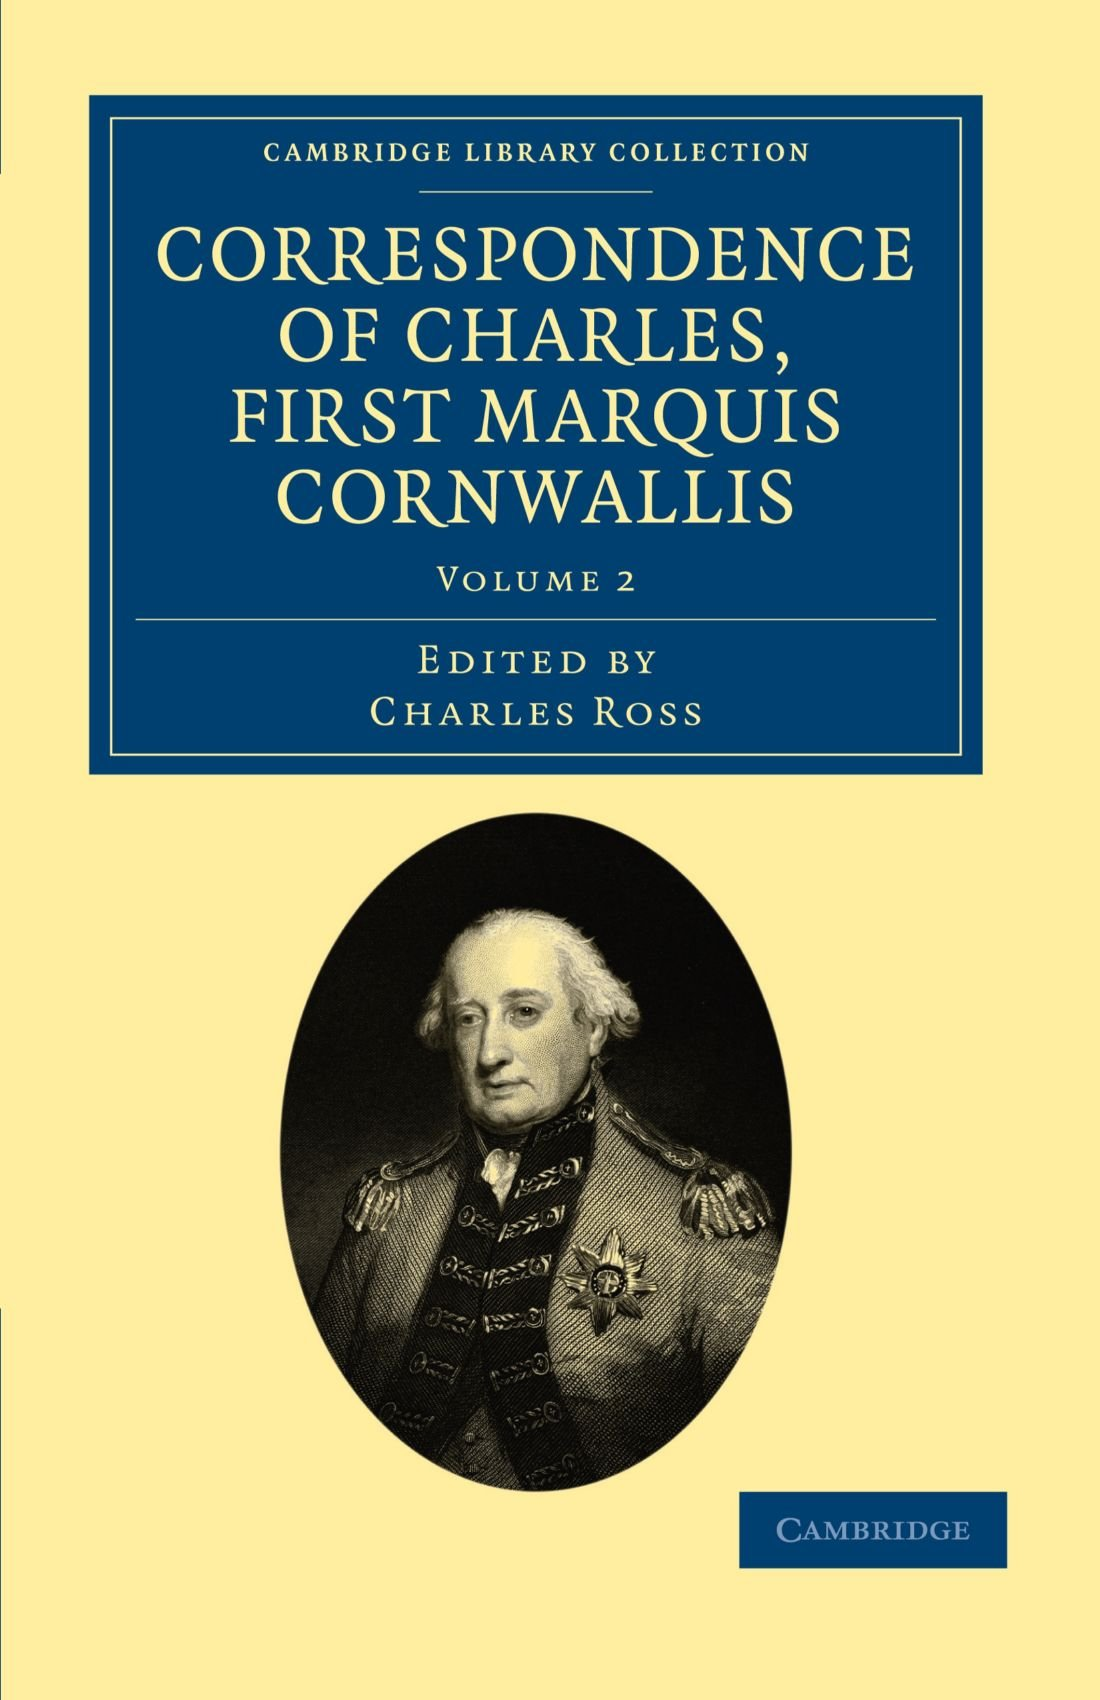 Correspondence of Charles, First Marquis Cornwallis (Cambridge Library Collection - South Asian History) (Volume 2) ebook